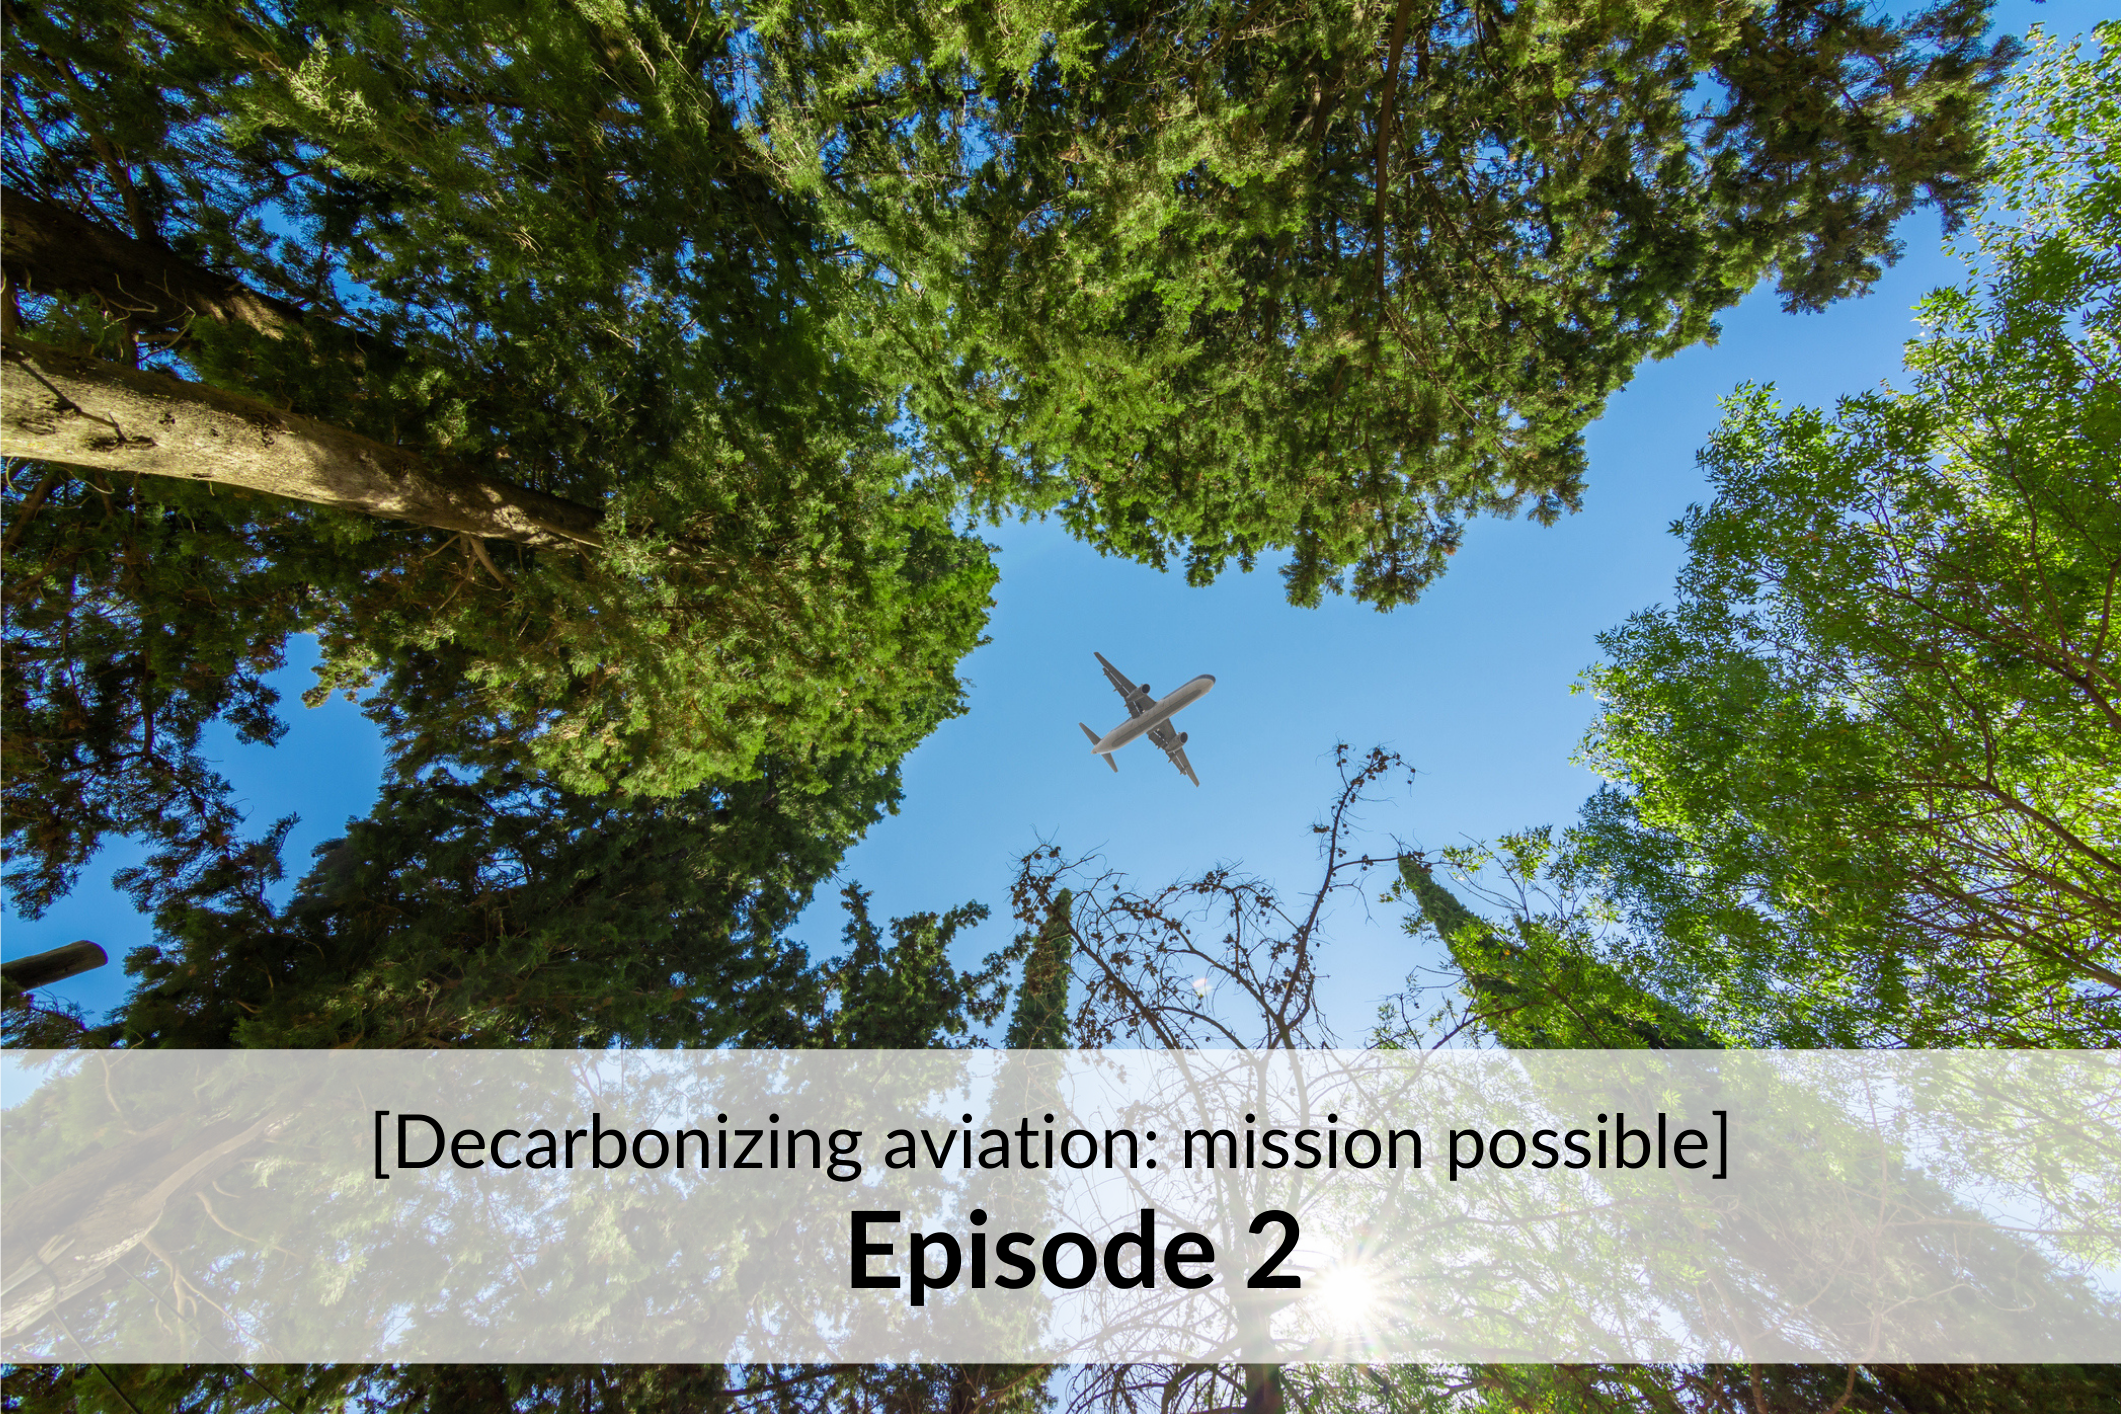 [Decarbonizing aviation: mission possible] - Episode 2